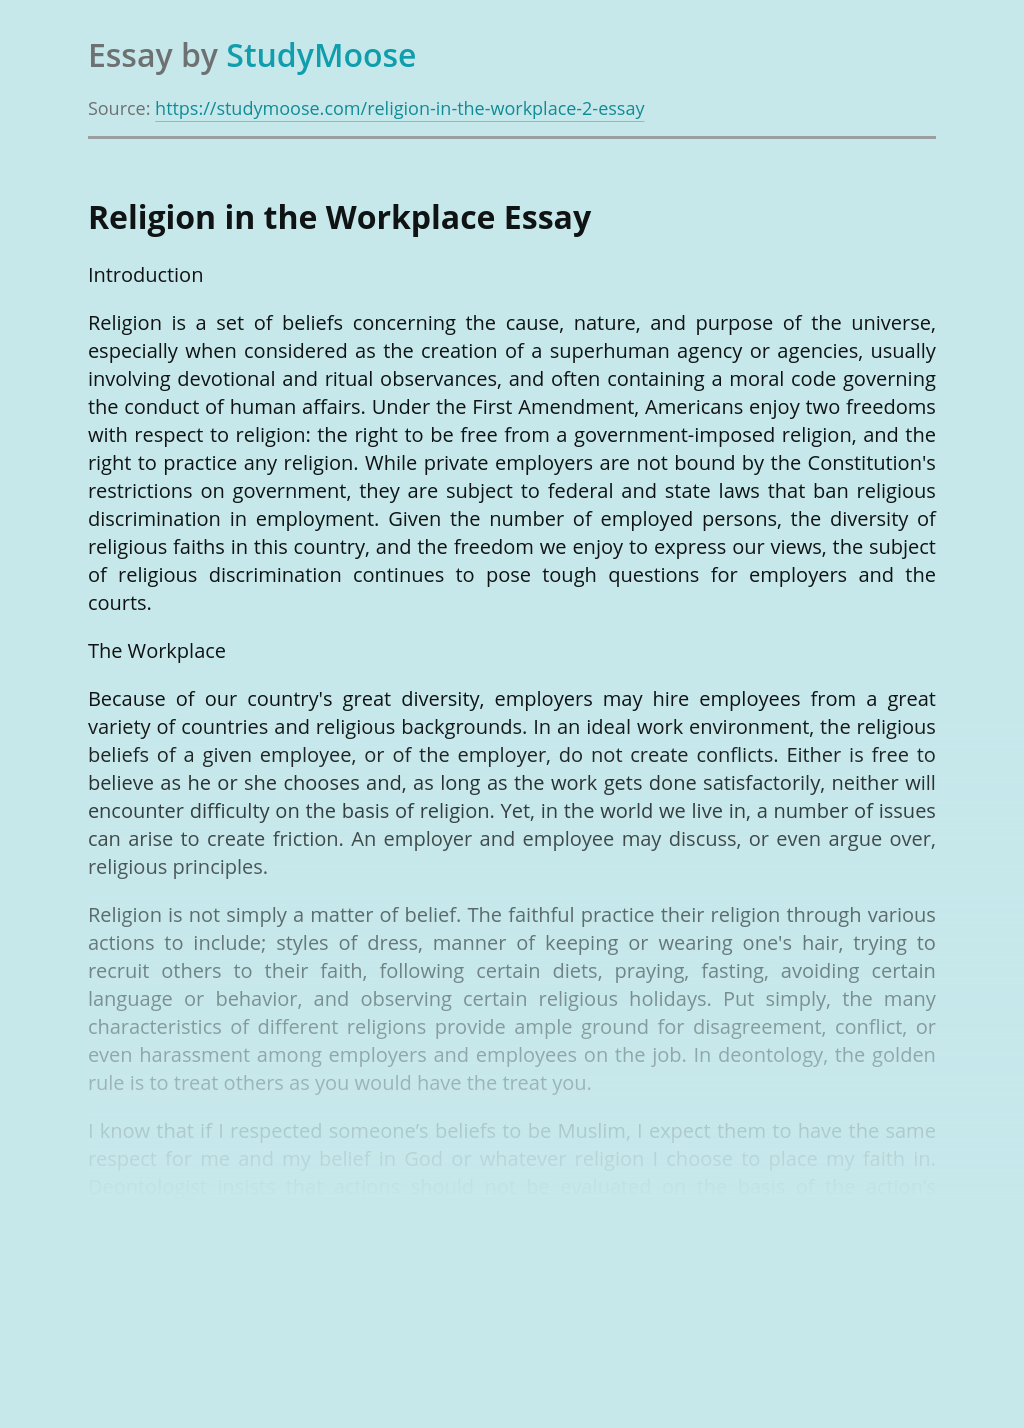 Religion in the Workplace